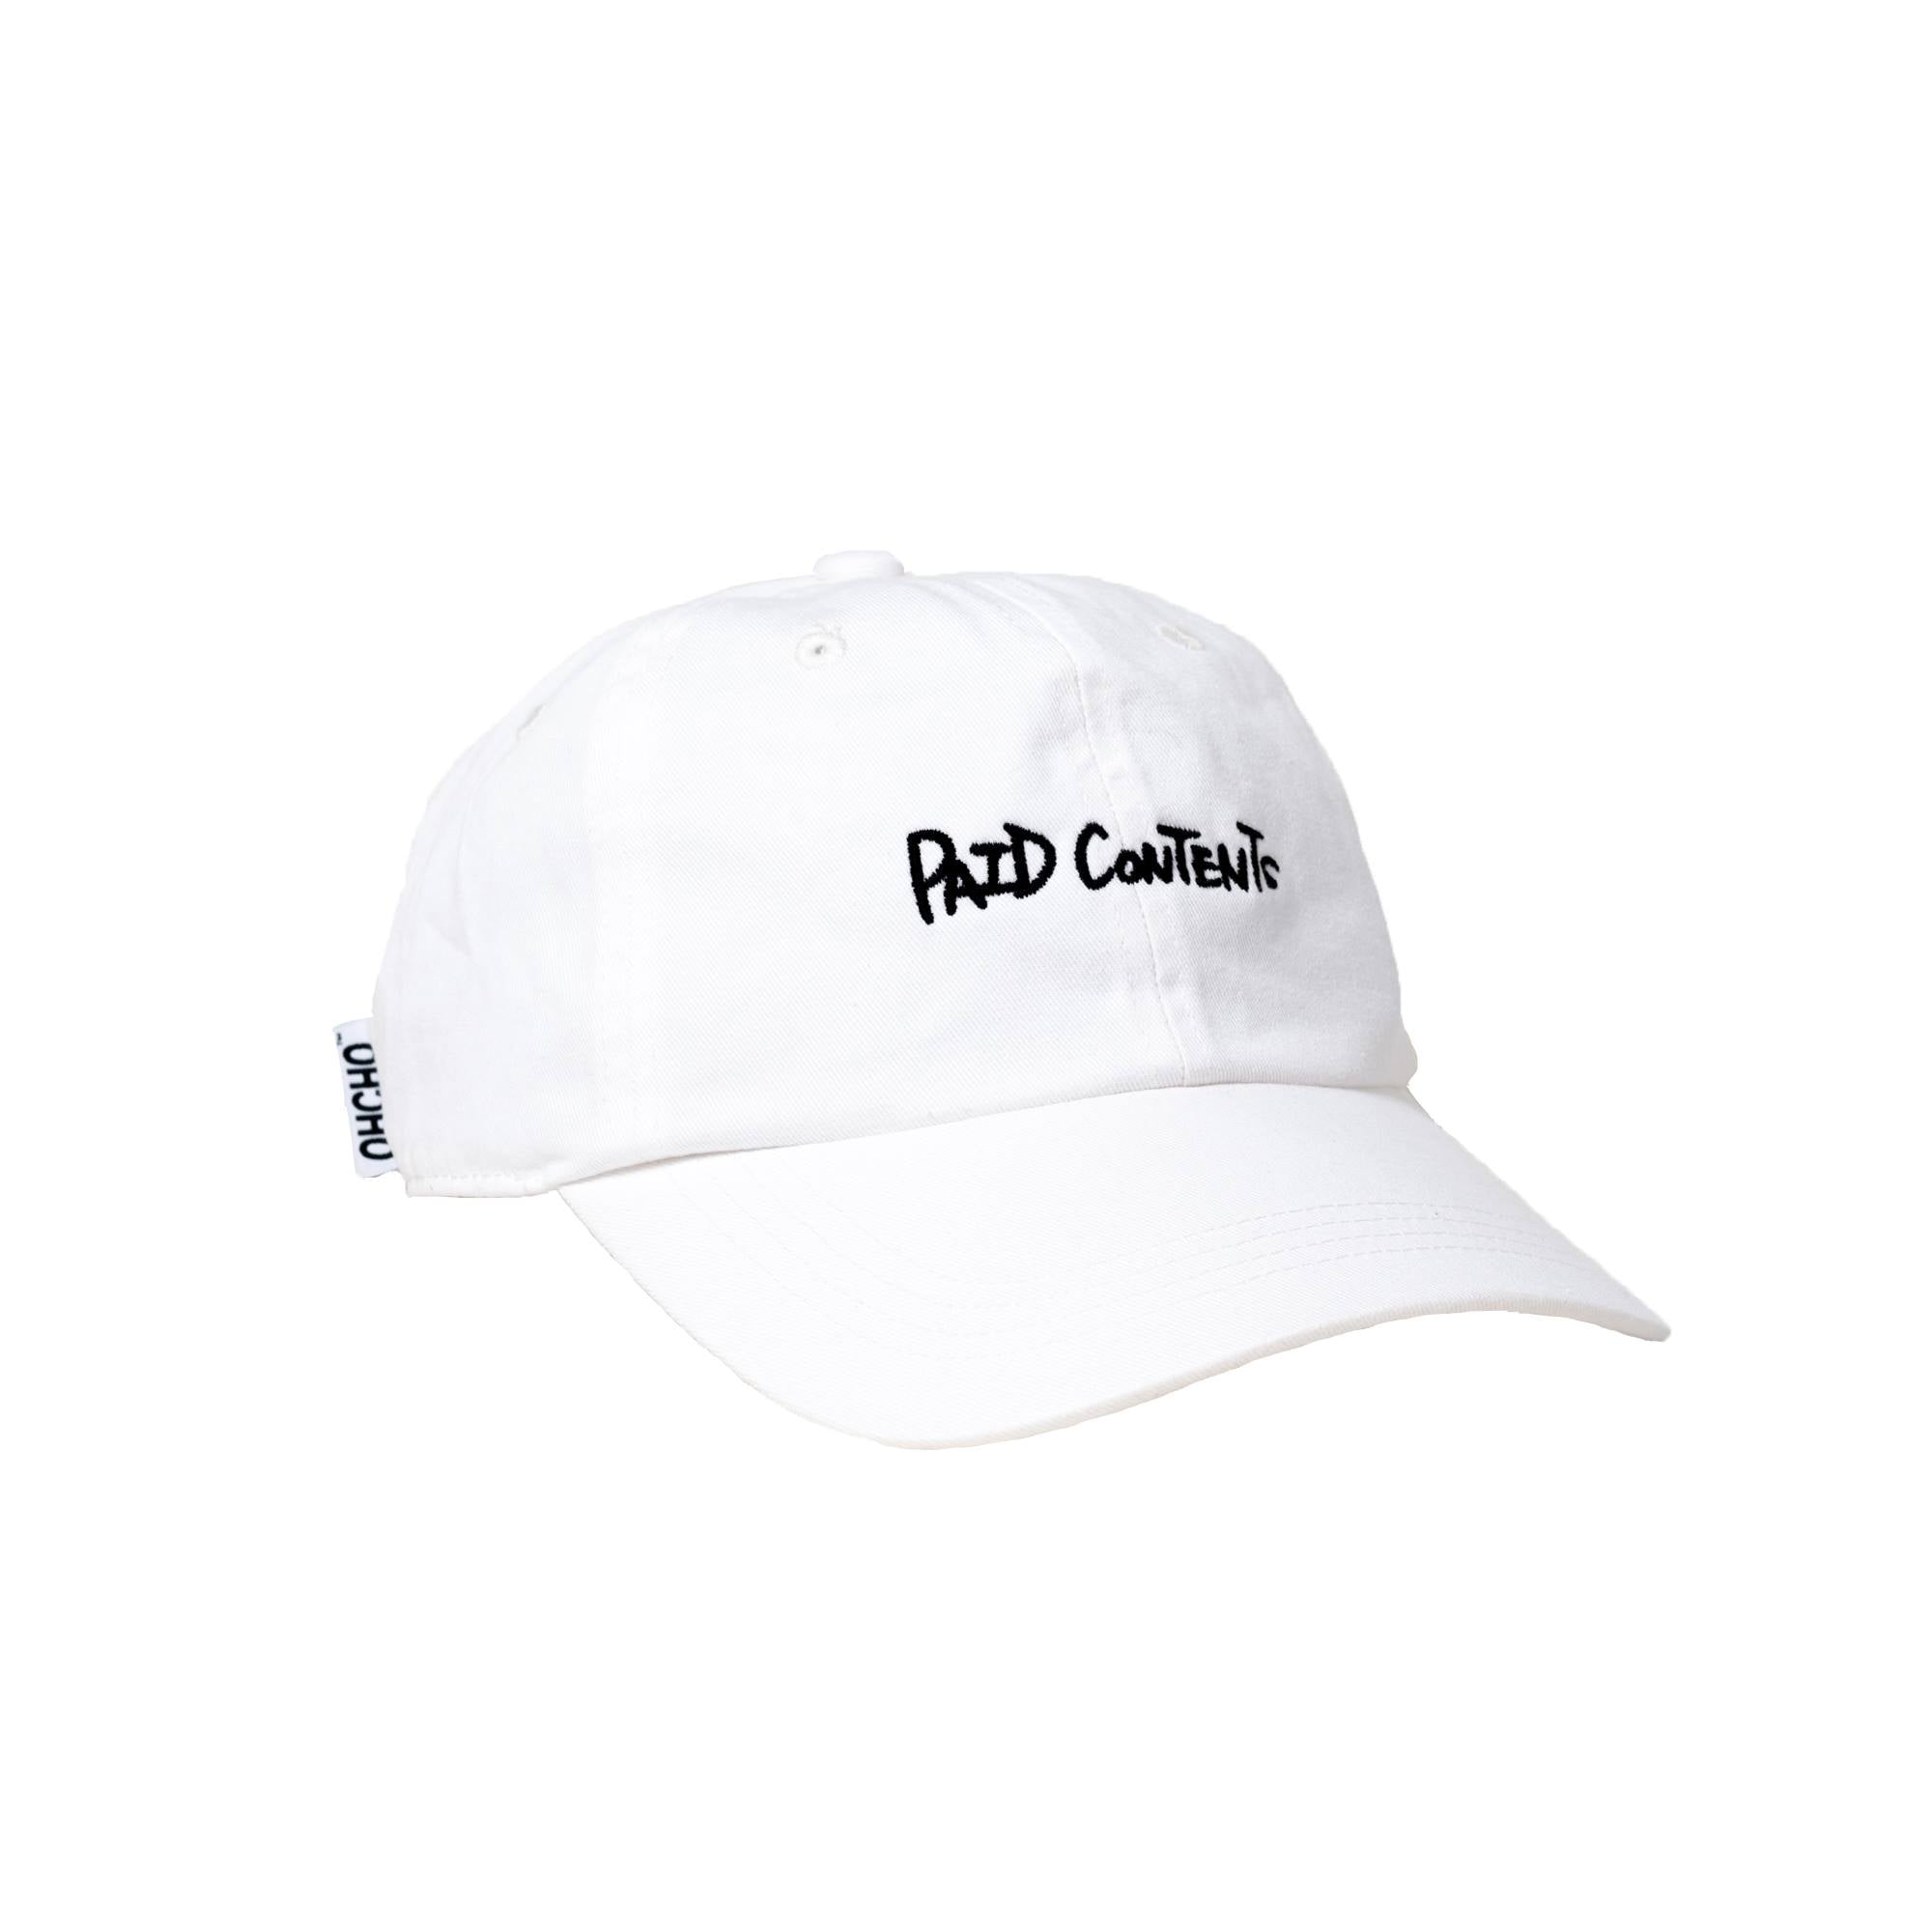 PAID CONTENTS(WHITE-blk)